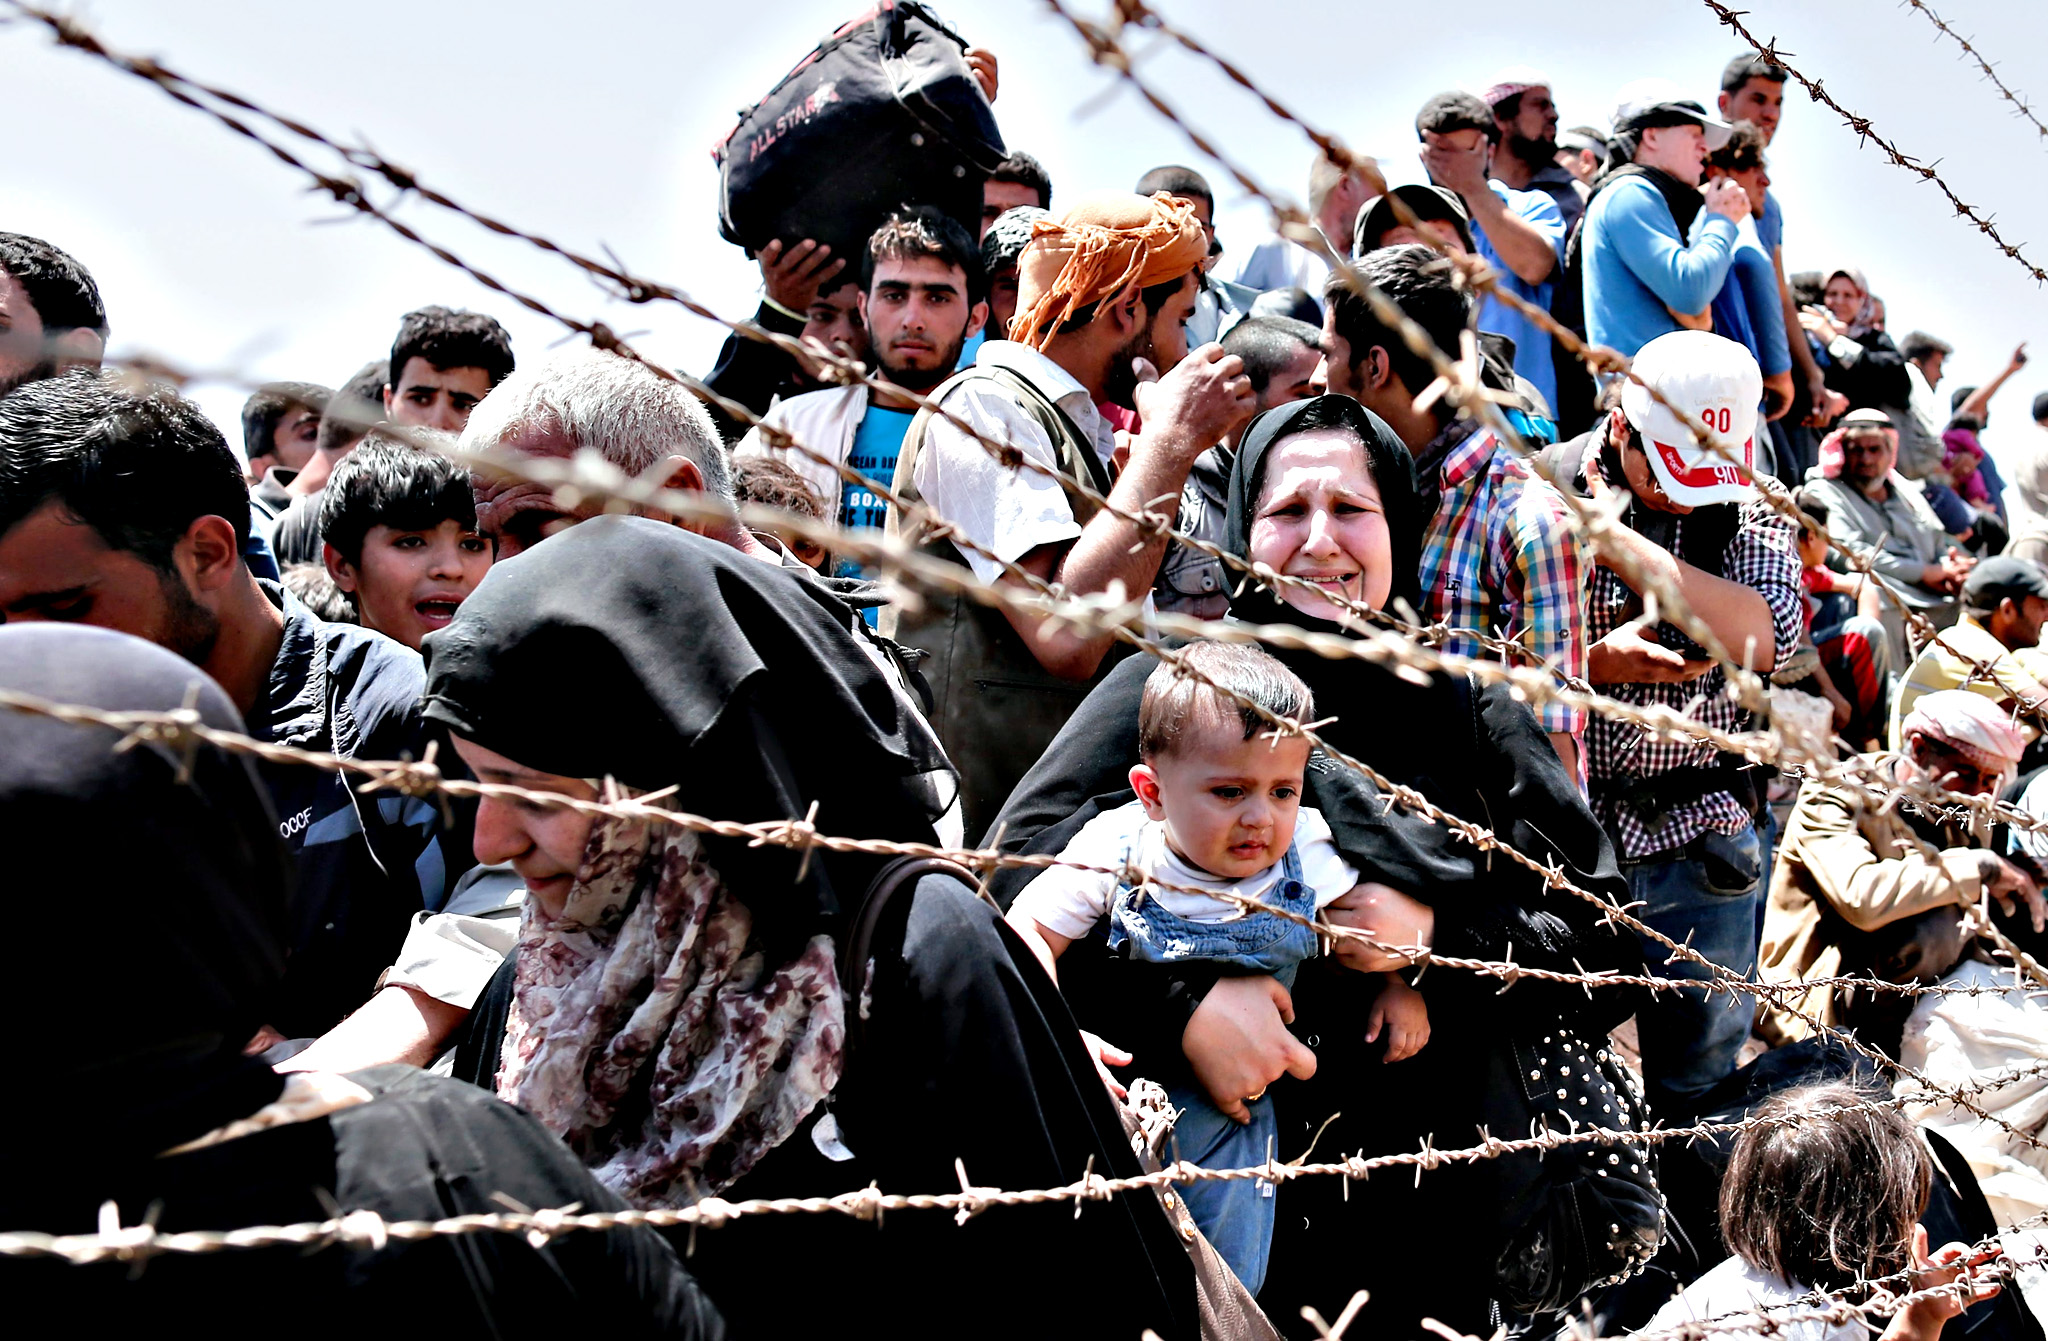 Syrian refugees at Turkey-Syria border...epa04791762 A picture taken from the Turkish side of the border between Turkey and Syria shows Syrian refugees waiting on the Syrian side of the border crossing near Akcakale, Sanliurfa province, south-eastern Turkey, 10 June 2015. More than 320,000 people are likely to have been killed in Syria's civil war, the Britain-based Syrian Observatory for Human Rights monitoring group said on 09 June. The organization said said it had been able to document the deaths of 230,618 people, including 69,494 civilians of whom more than 7,000 were children. The crisis in Syria started in March 2011 with peaceful demonstrations calling for more freedom from the repressive al-Assad regime, but quickly degenerated into violence after deadly crackdowns by security forces.  EPA/SEDAT SUNA